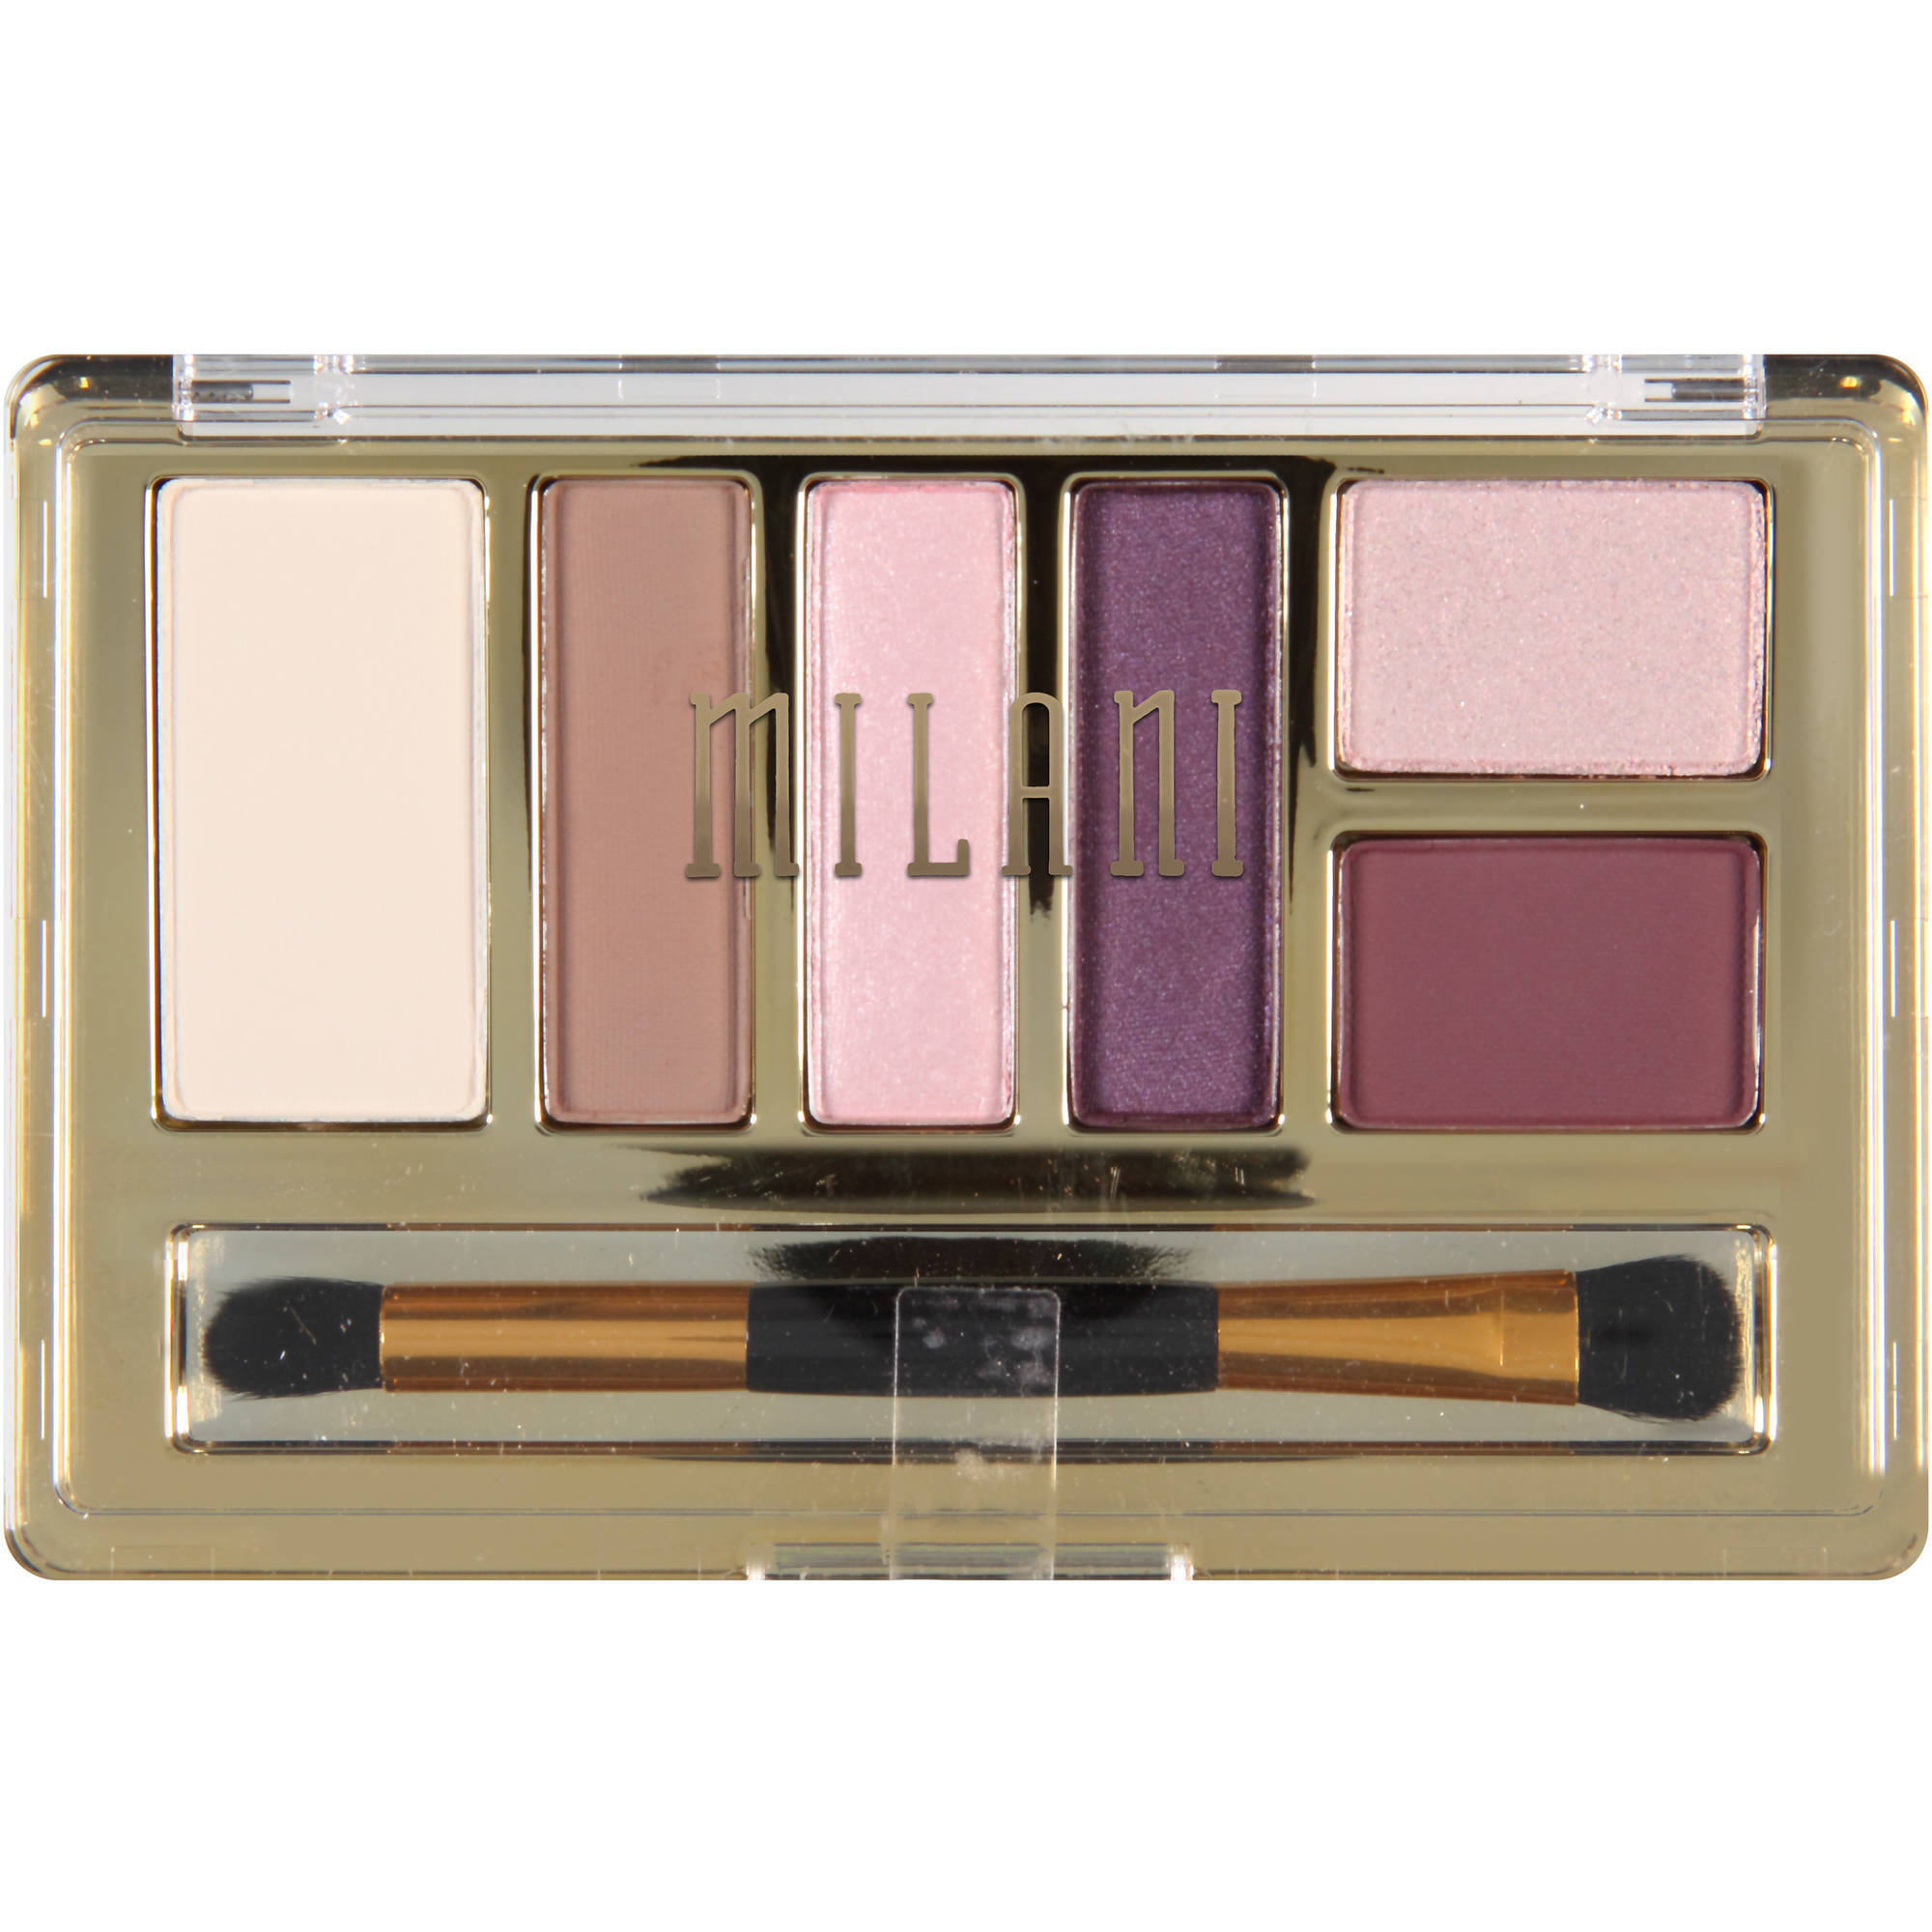 Milani Everyday Eyes Eyeshadow Collection, 04 Plum Basics, 0.21 oz